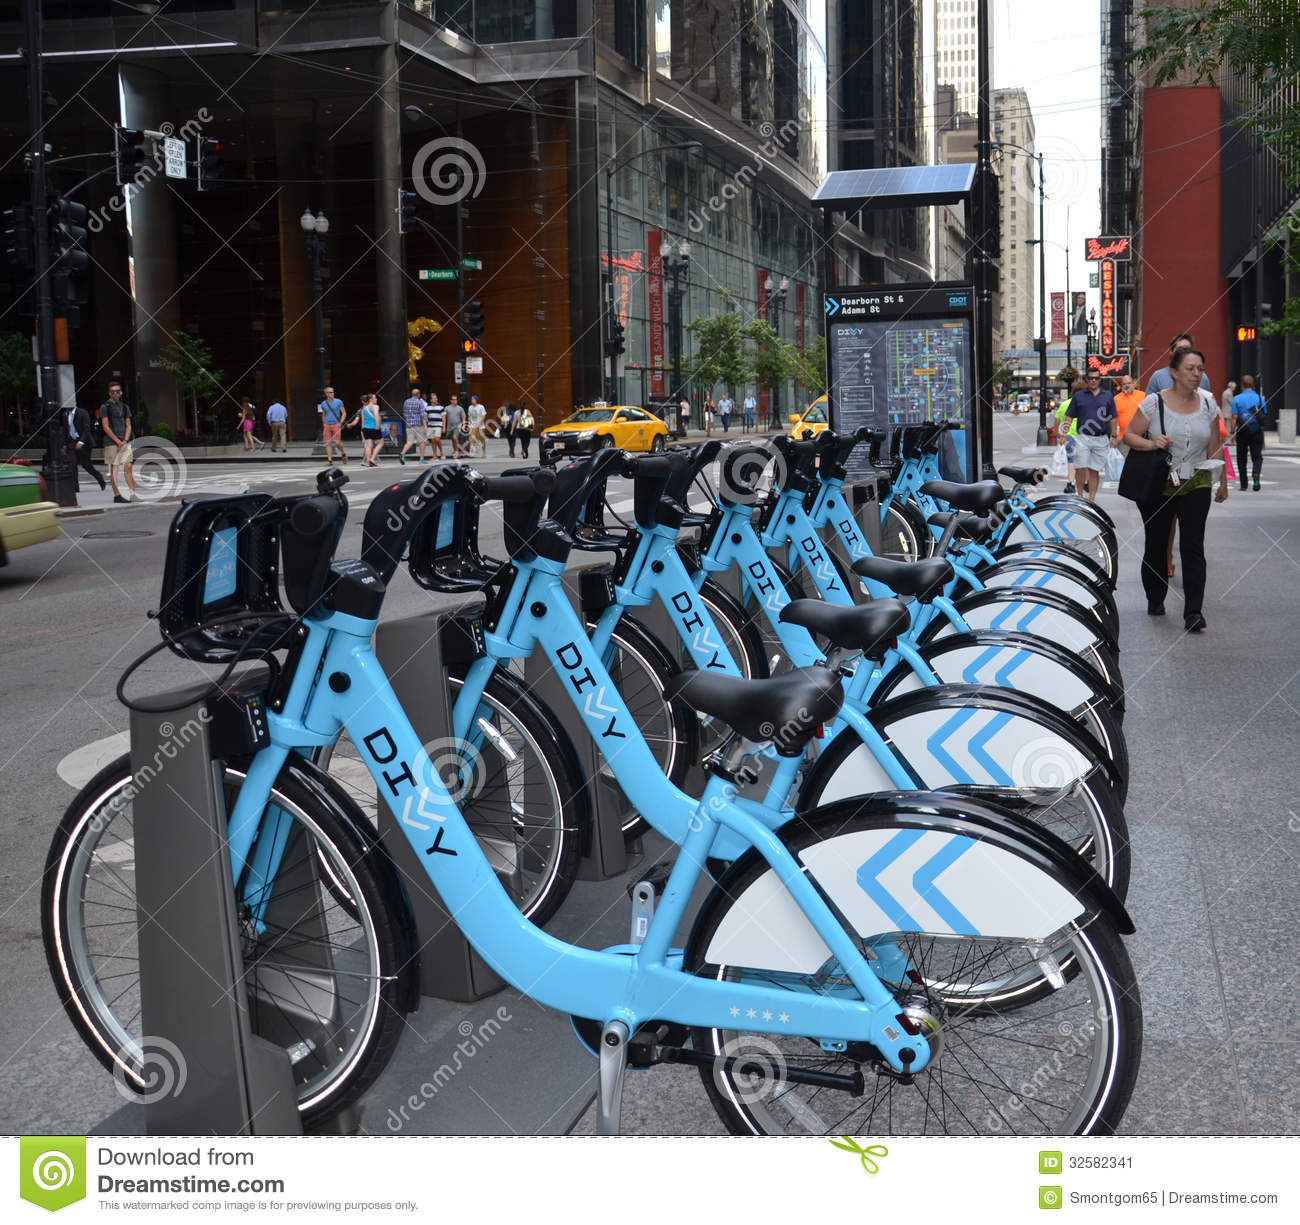 Divvy Bikes In Chicago Divvy bike rental station in